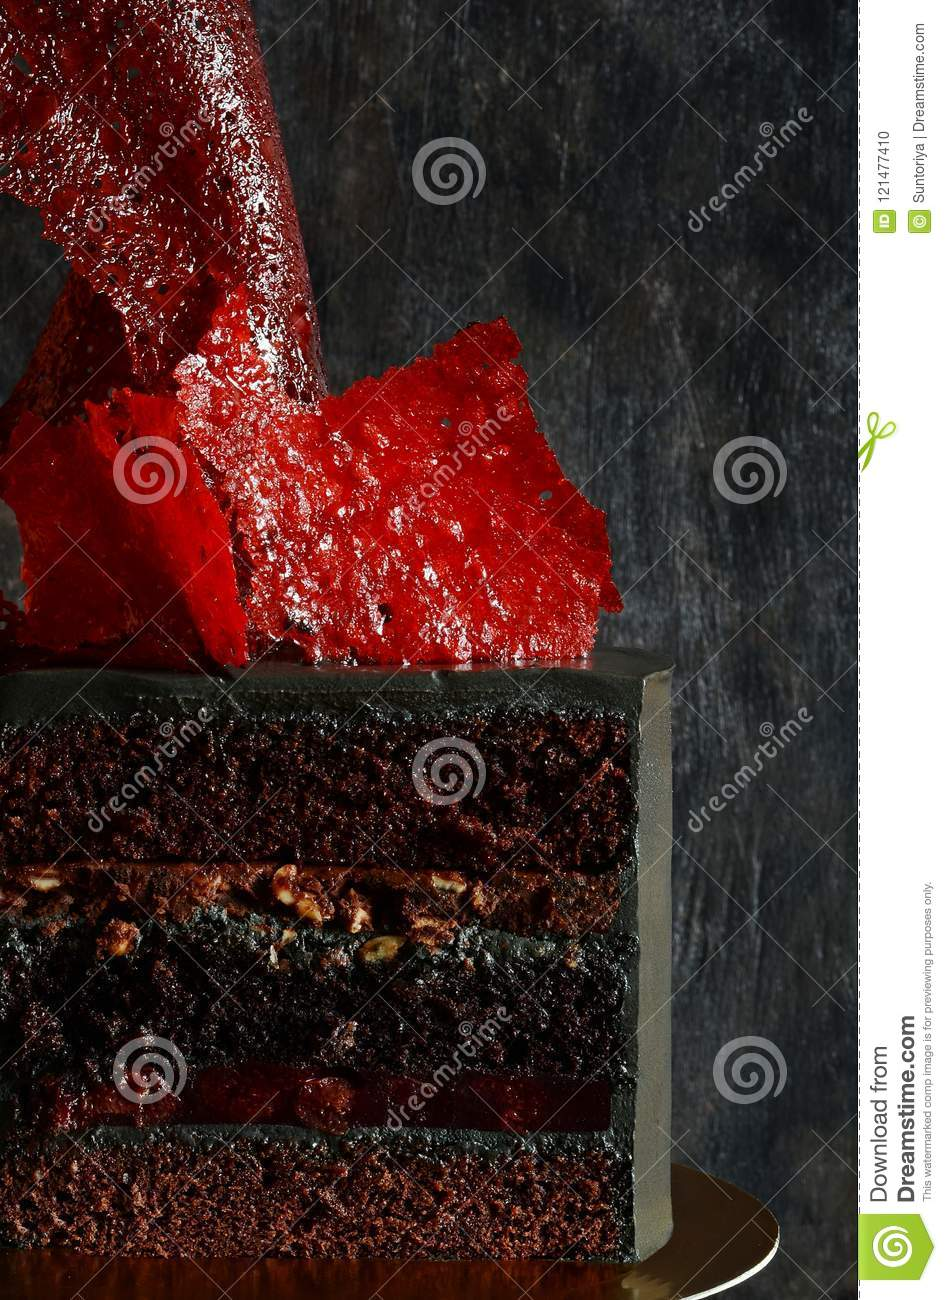 Incredible Extravagant Cake Of Black Color With Bright Red Caramel Decor Funny Birthday Cards Online Necthendildamsfinfo